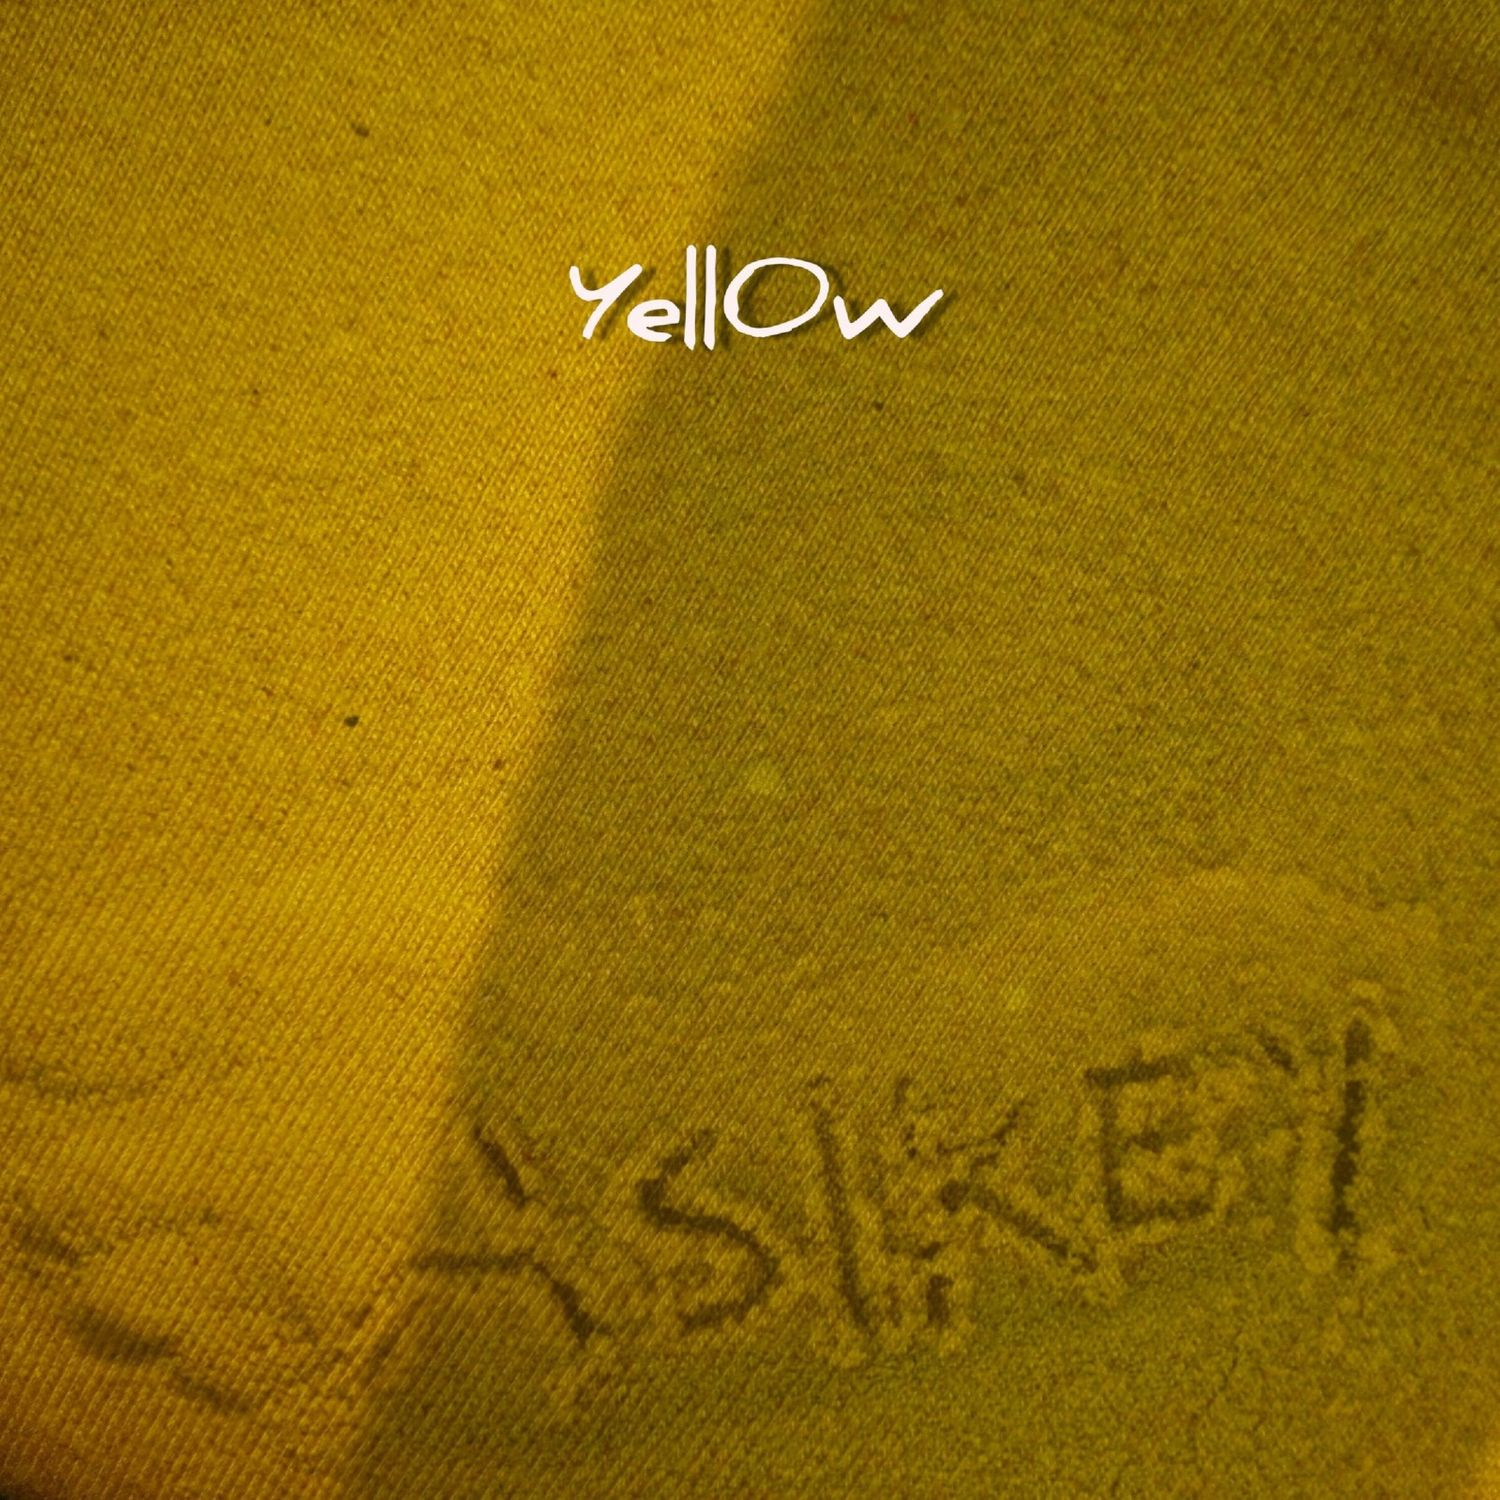 Asikey ft. Brymo - The Kind That Live Forever